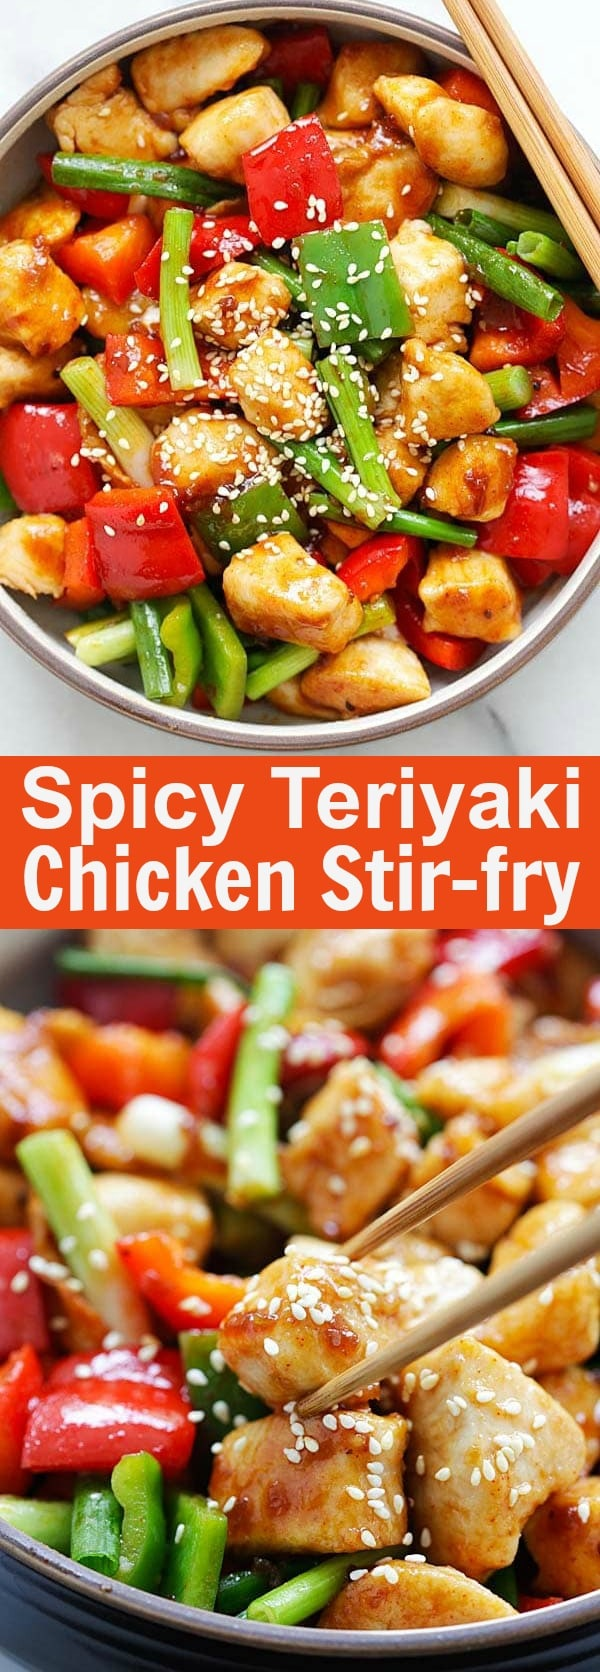 Spicy Teriyaki Chicken Stir Fry – easy and authentic Asian chicken stir fry with Annie Chun's Teriyaki Sauce and Korean Gochujang. So delicious | rasamalaysia.com